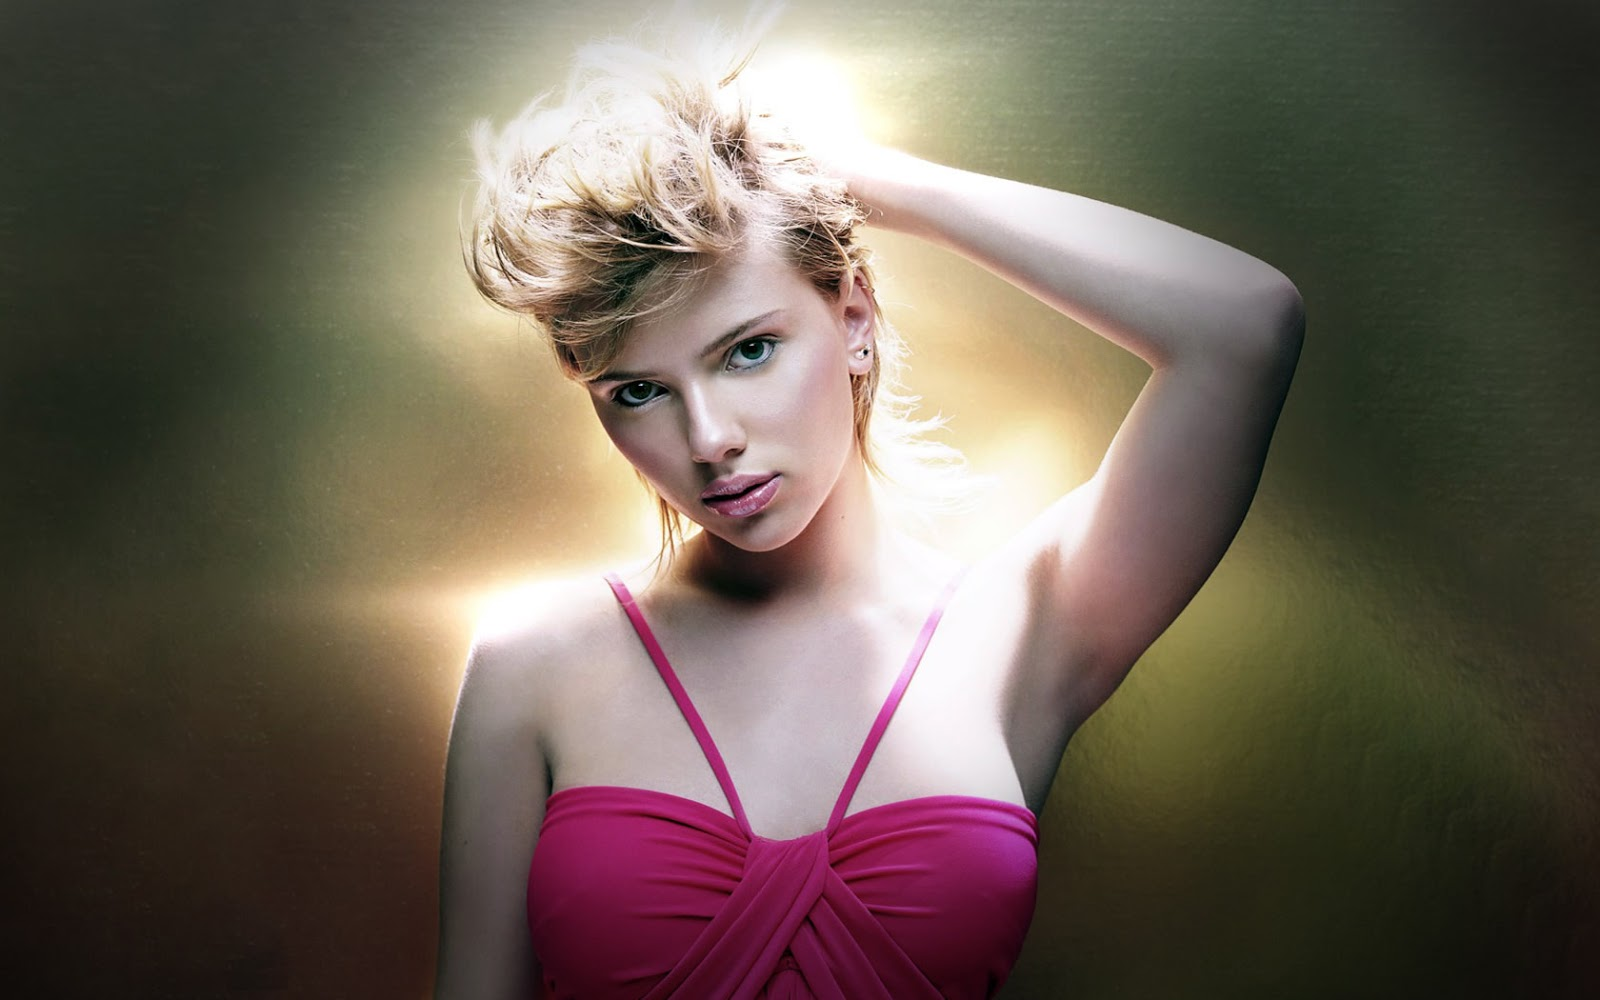 Scarlett Johansson Wallpaper: South Mp3 Songs: Scarlett Johansson Hd Wallpapers